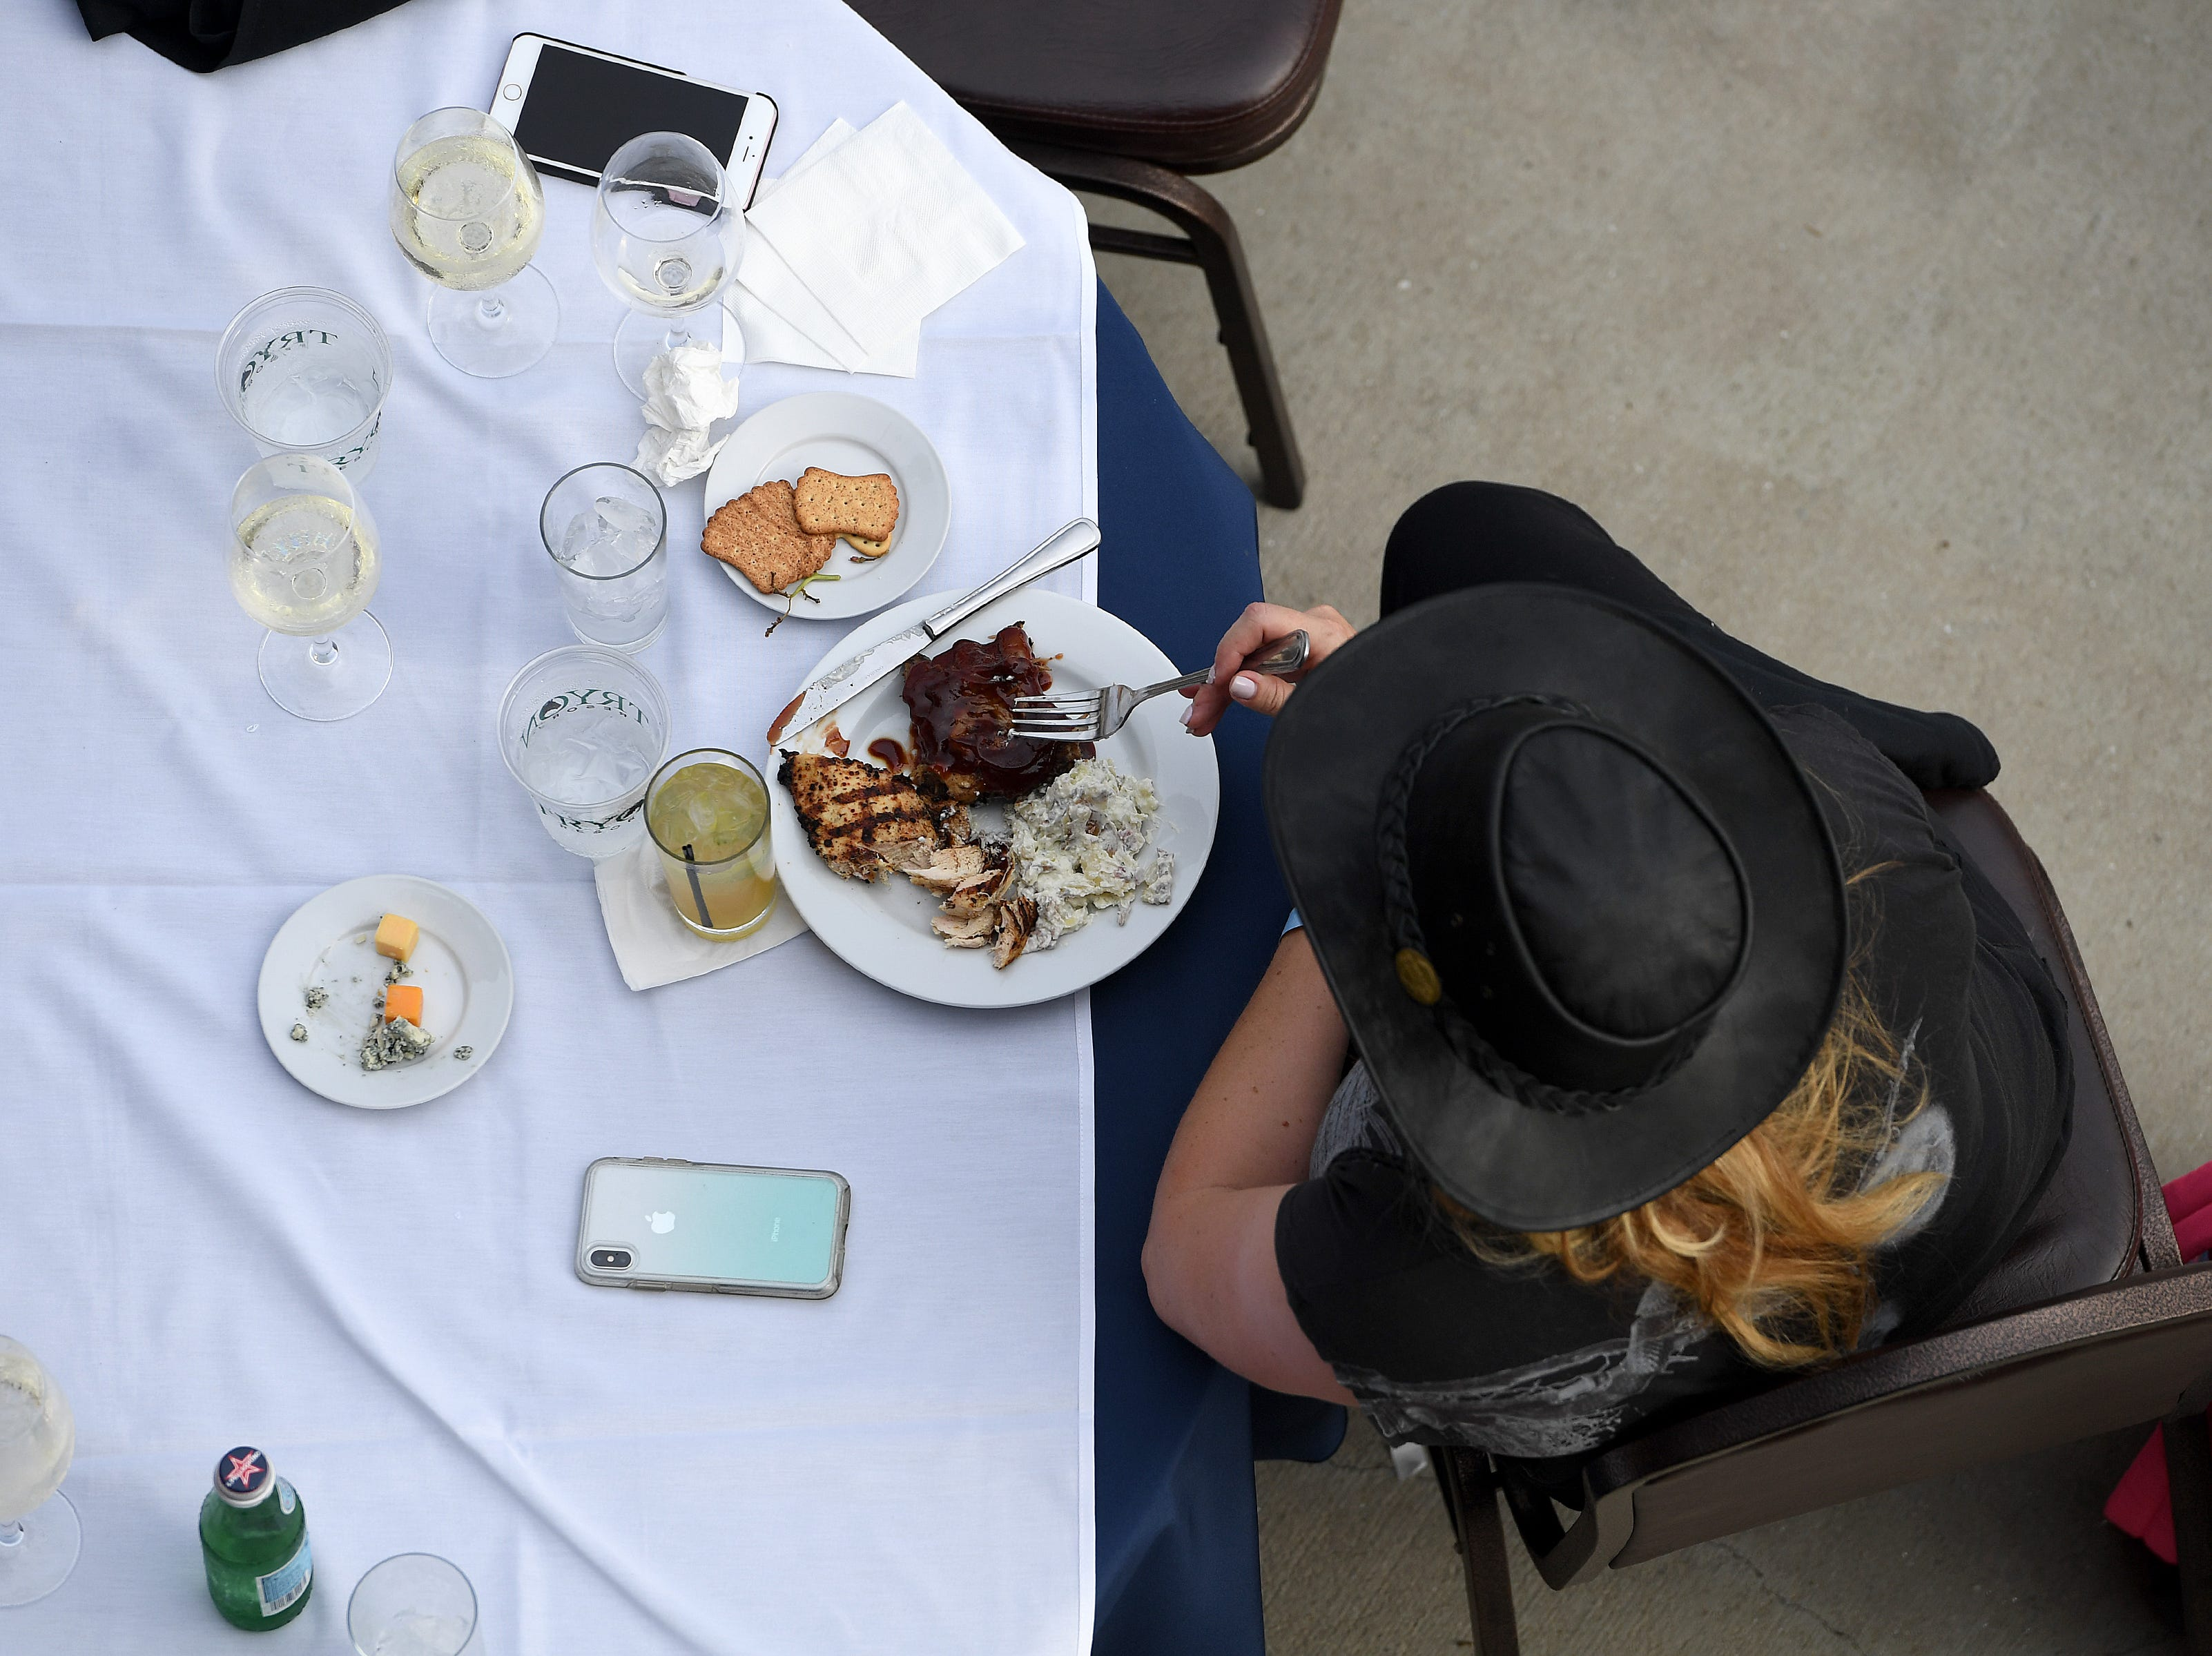 A woman eats dinner at the ring-side restaurant during the opening ceremony for the FEI World Equestrian Games at the Tryon International Equestrian Center on Sept. 11, 2018.